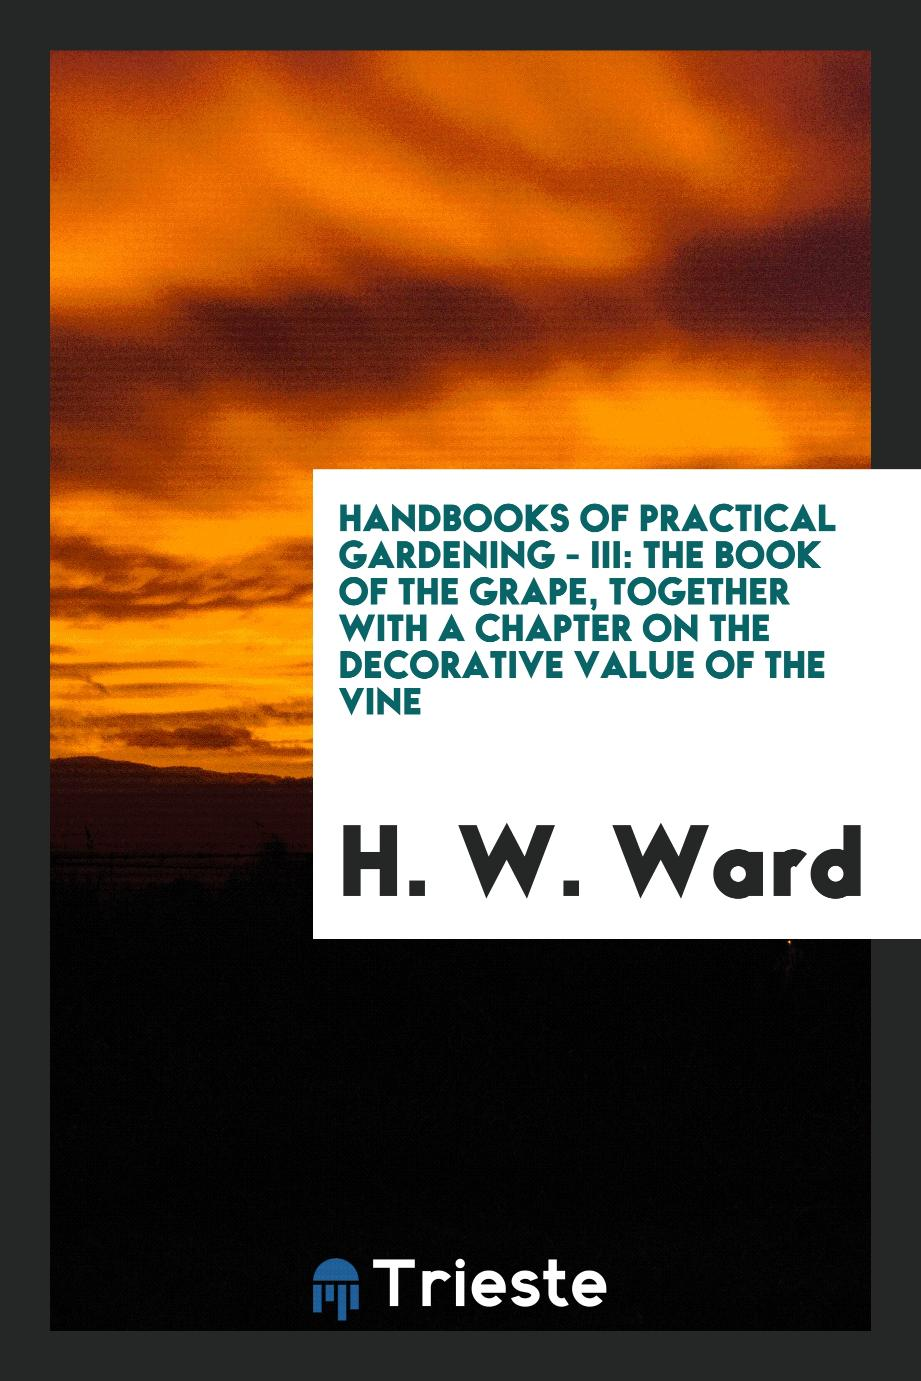 Handbooks of Practical Gardening - III: The Book of the Grape, Together with a Chapter on the Decorative Value of the Vine